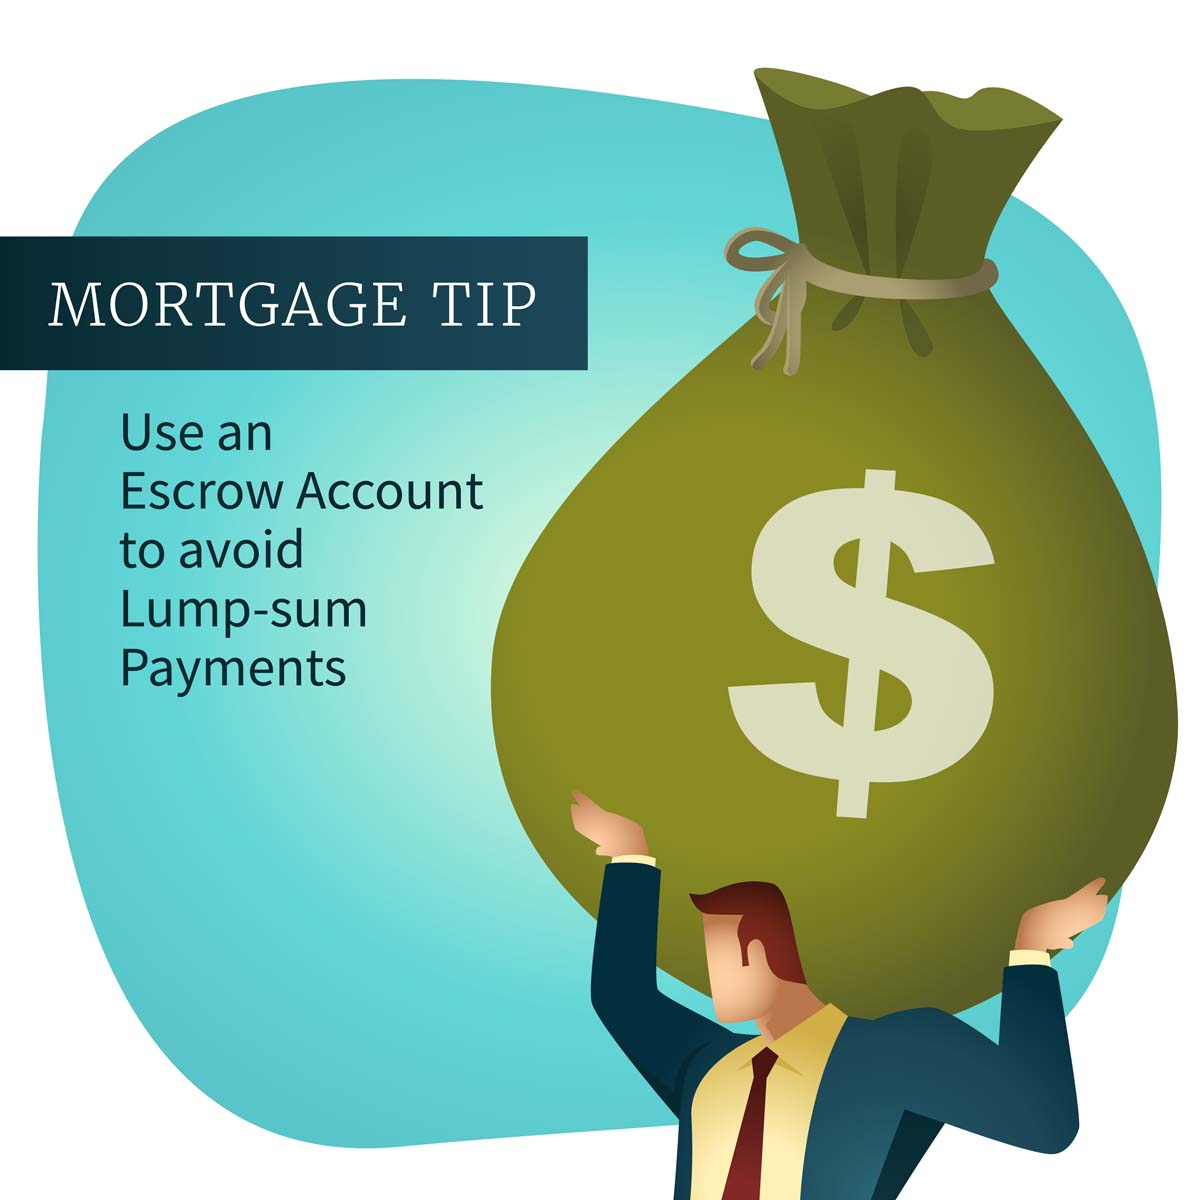 Would you rather spread out your property tax-bill payments or make one lump-sum payment? If the first is more appealing, an escrow account is right for you. For more tips, give us a ring. We make mortgages easy! pic.twitter.com/M9YLdQJTMl